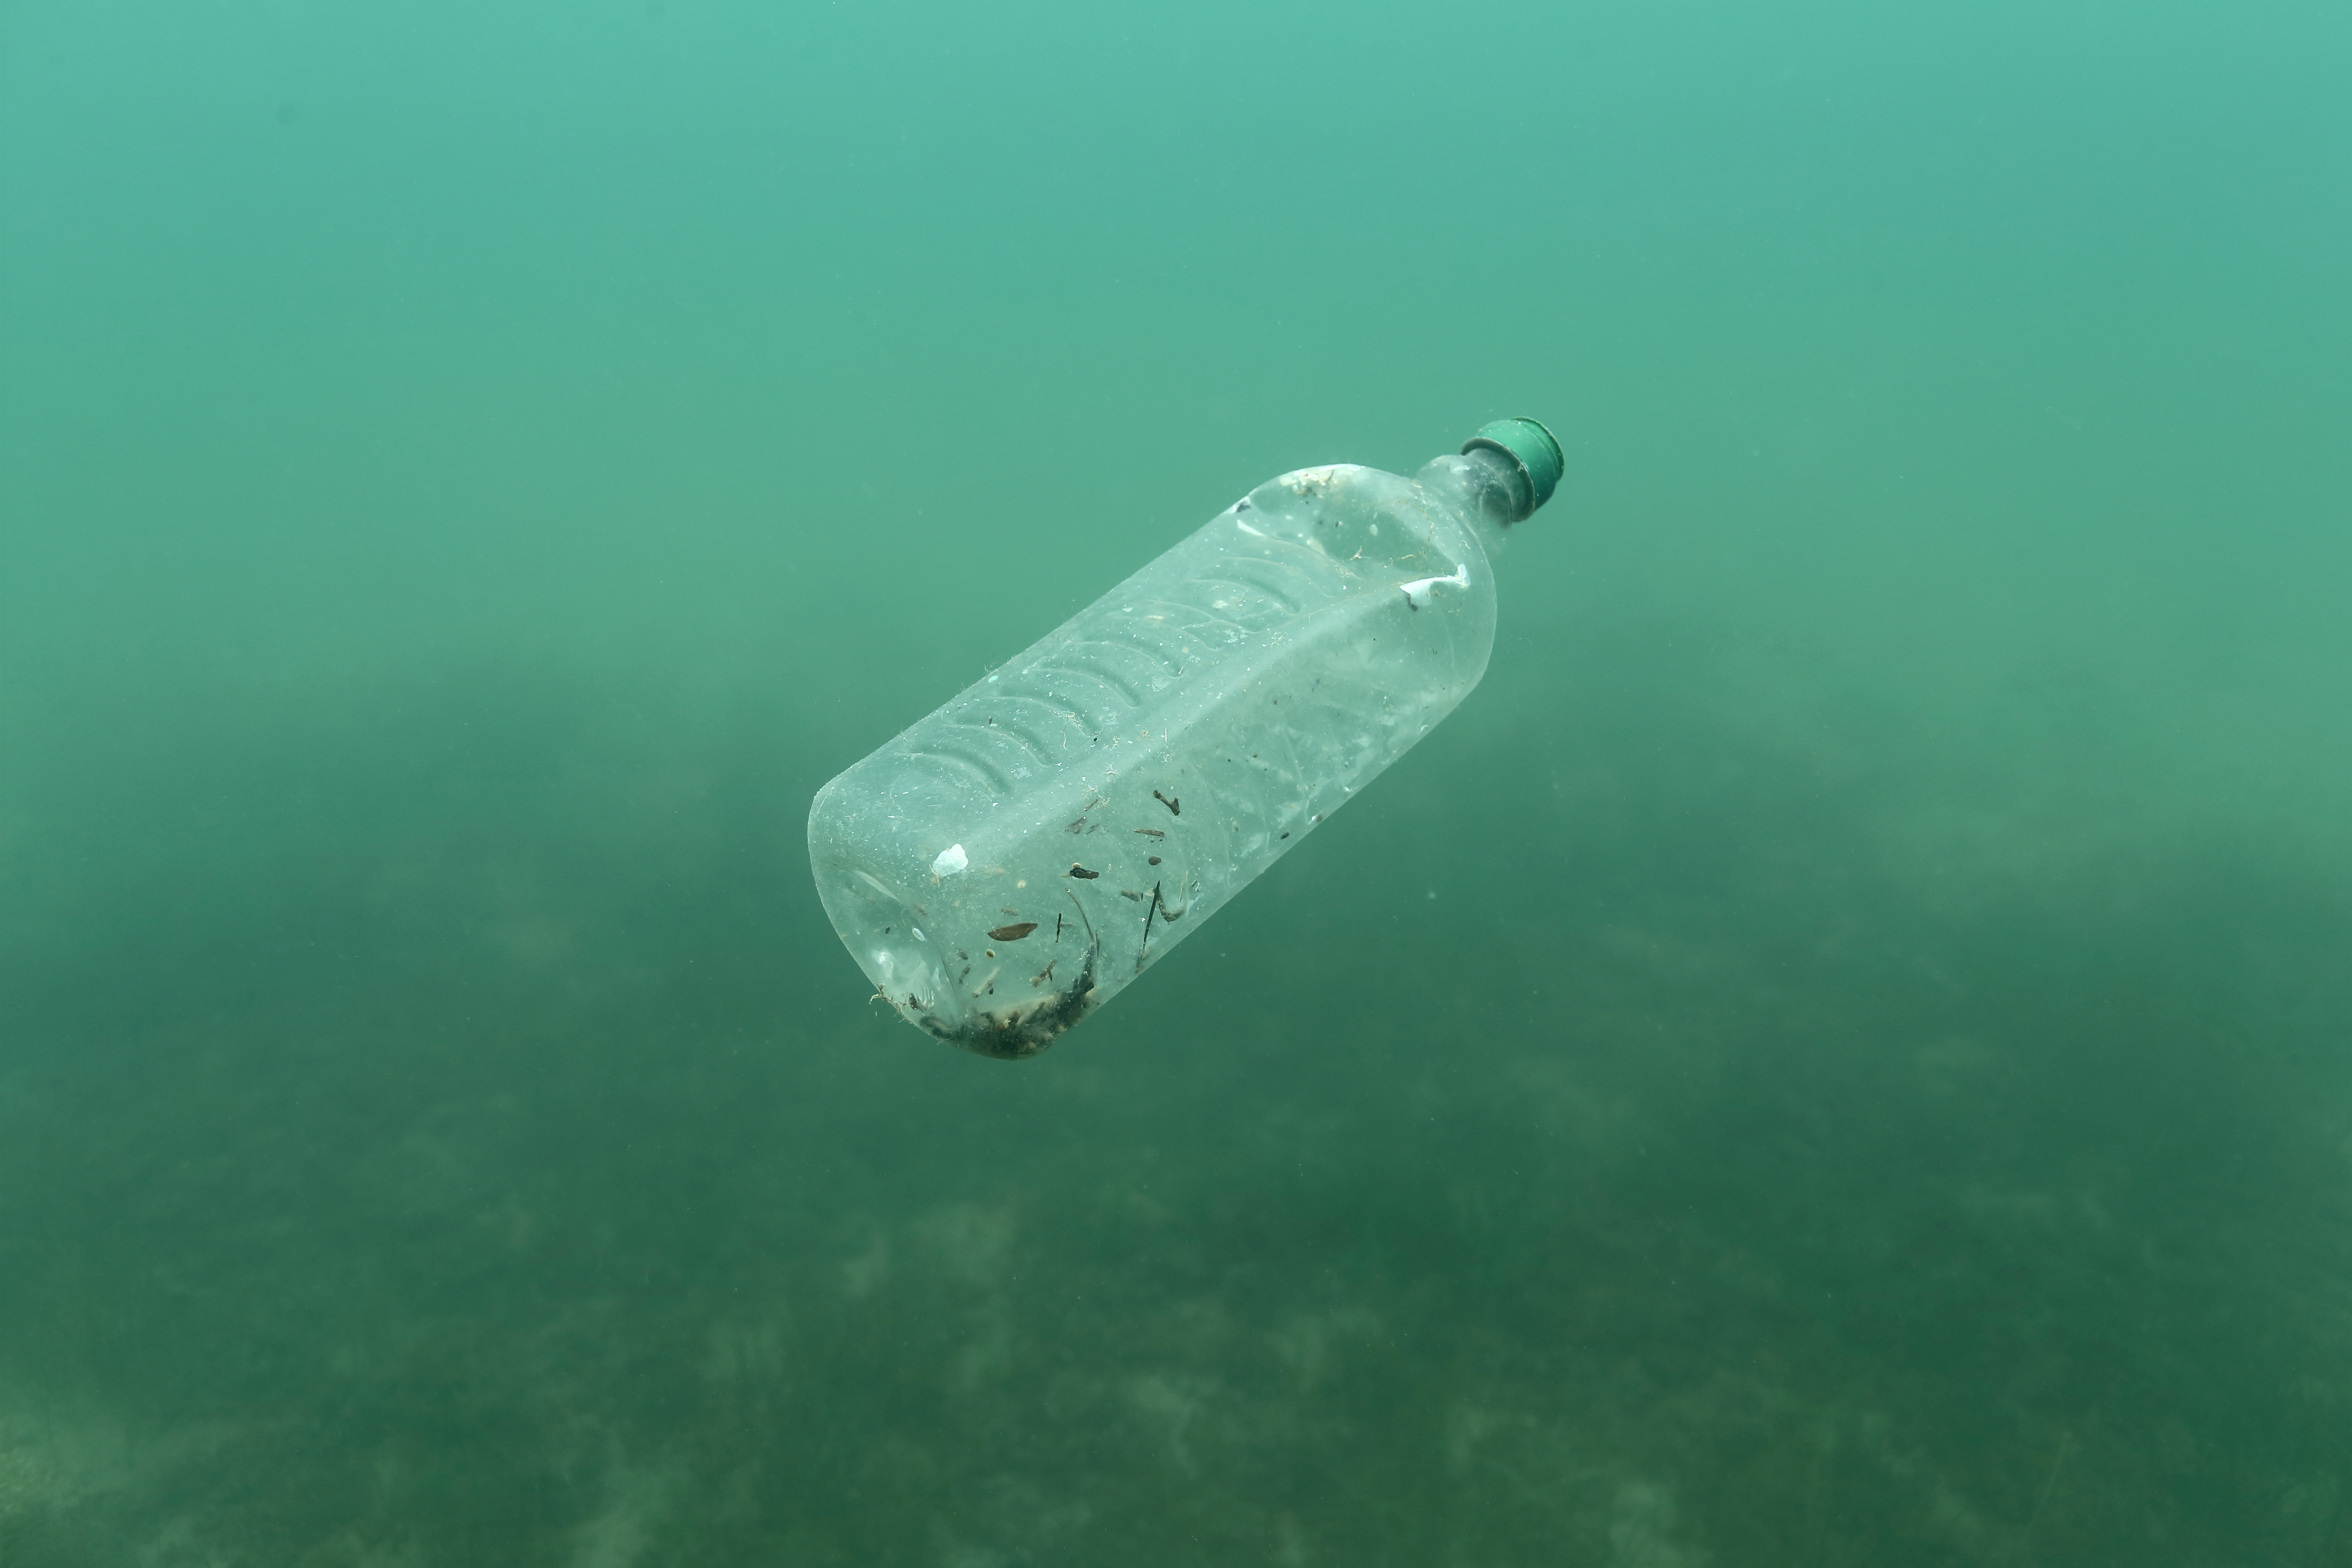 FILE PHOTO: A plastic bottle is seen floating in an Adriatic sea of the island Mljet, Croatia, May 30, 2018. REUTERS/Antonio Bronic/File Photo